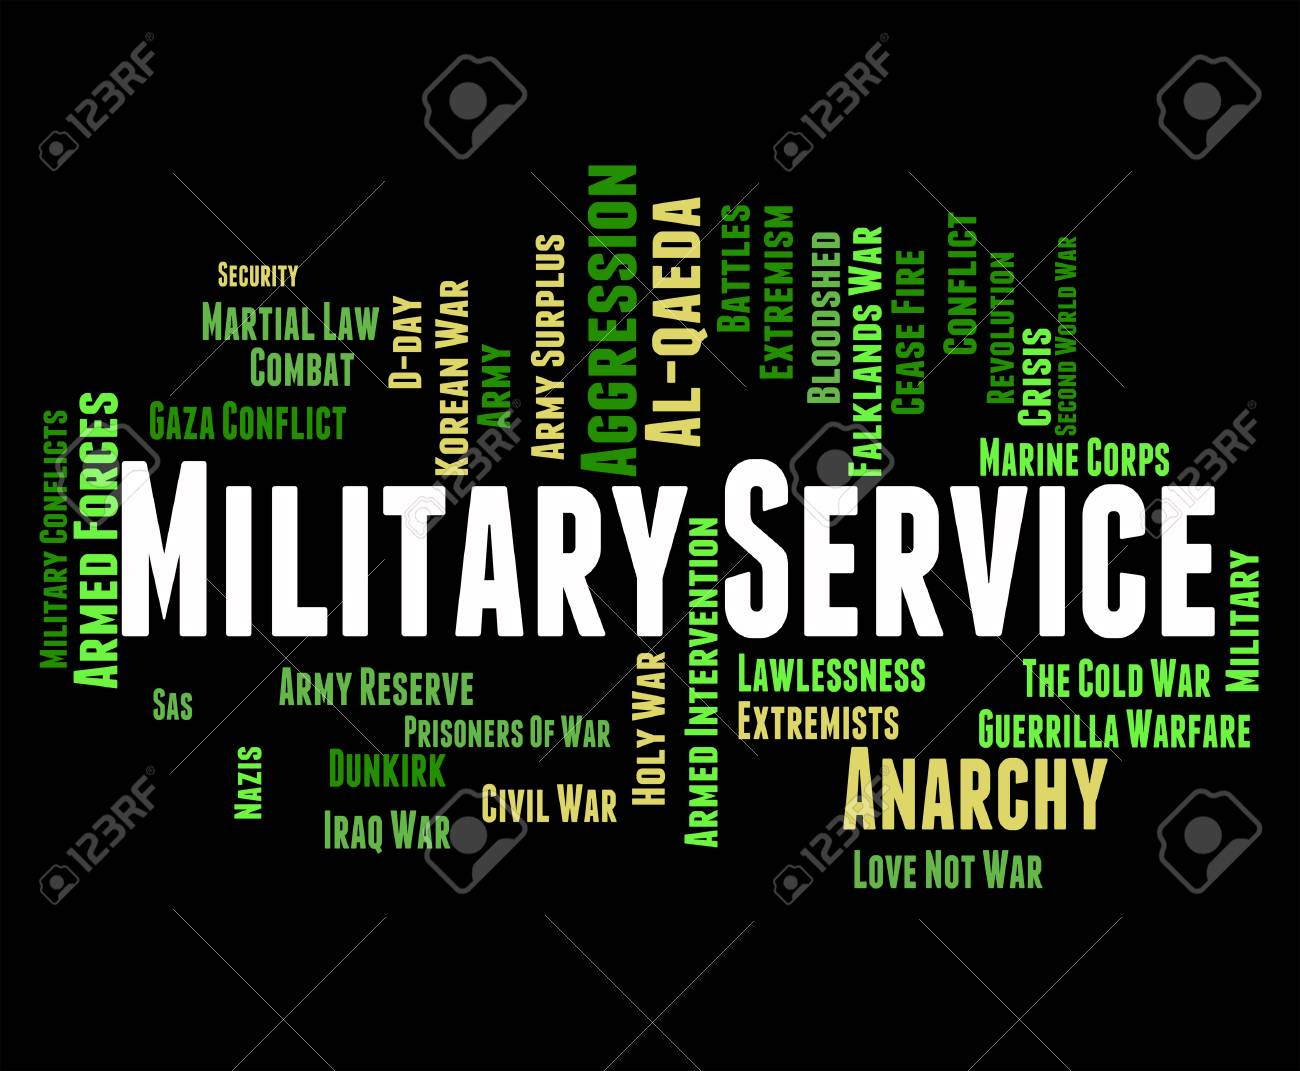 Military Service Showing Armed Forces And Text